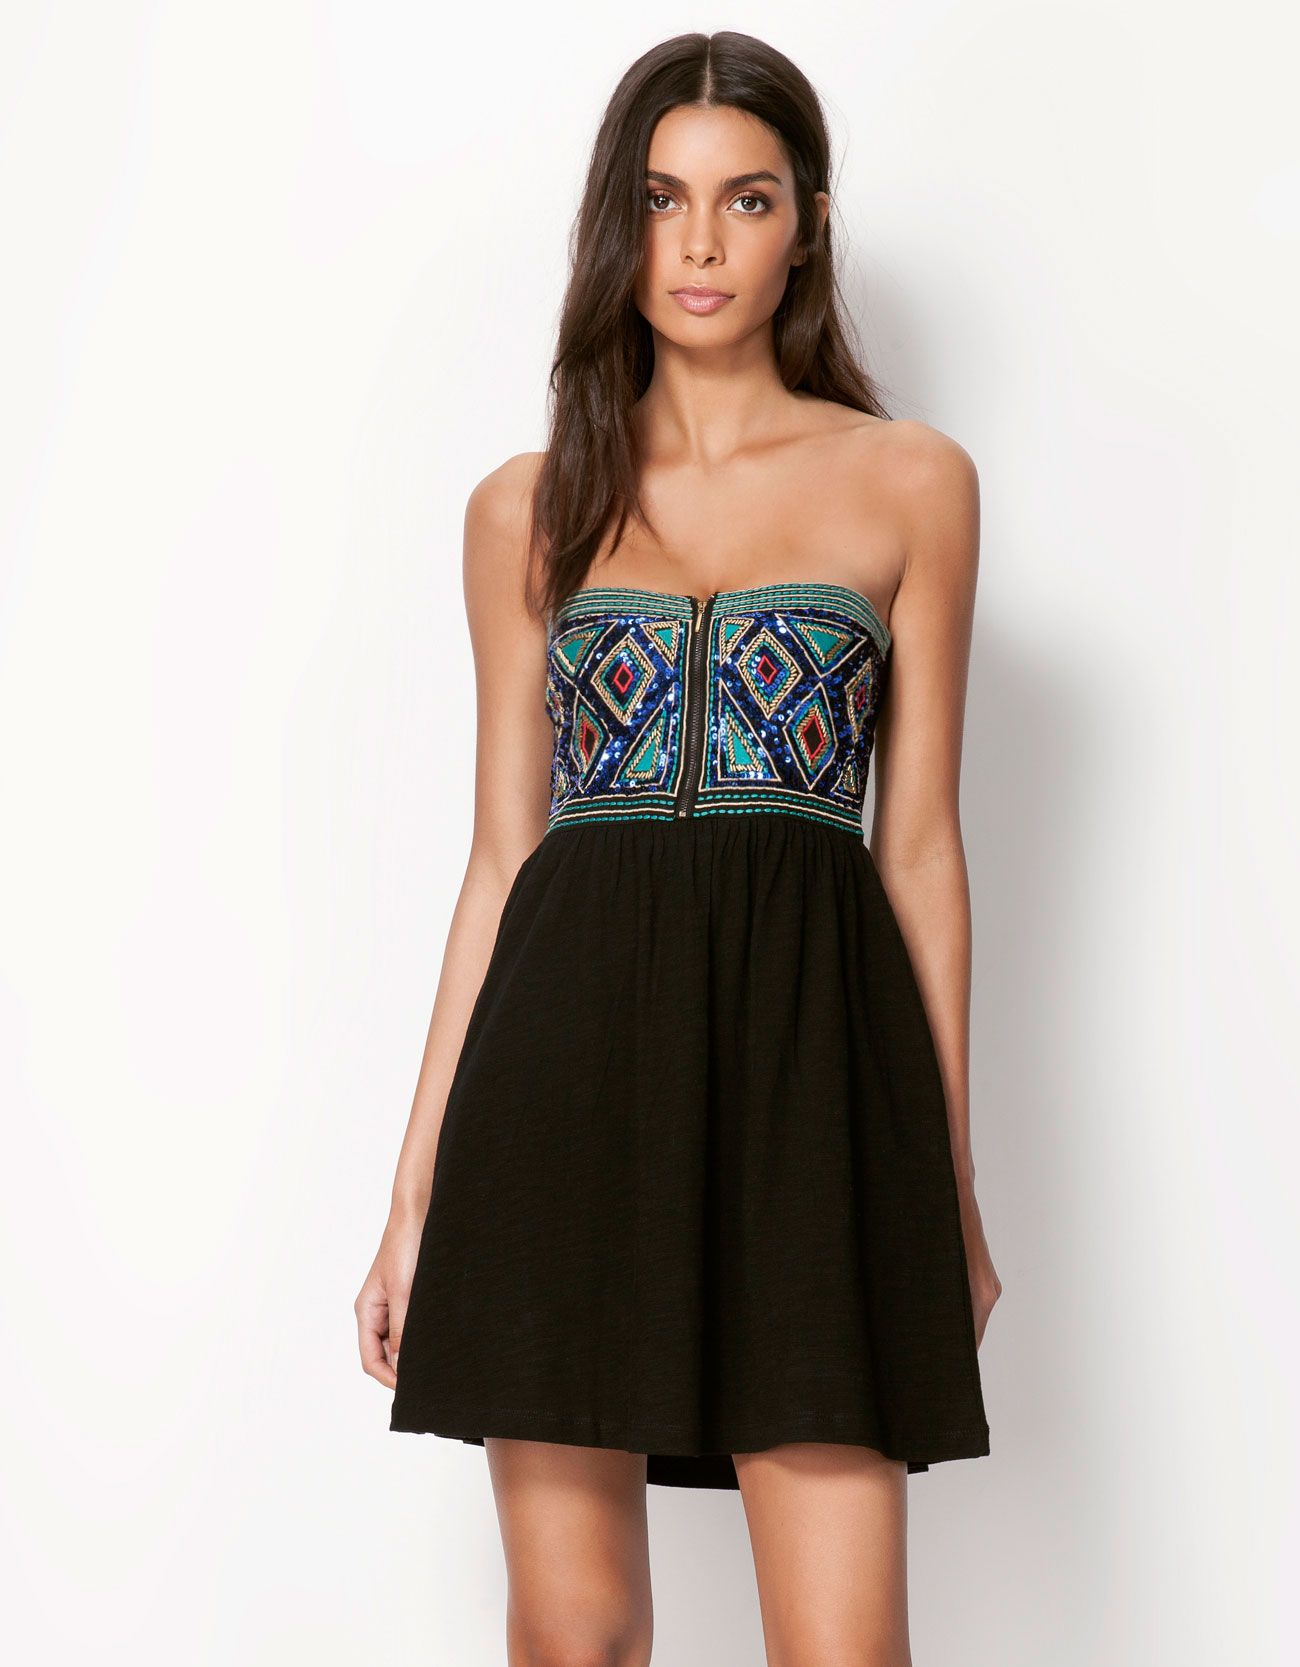 1dc231e02748b Bershka Singapore - Bershka appliqué detail dress | Fashion ...